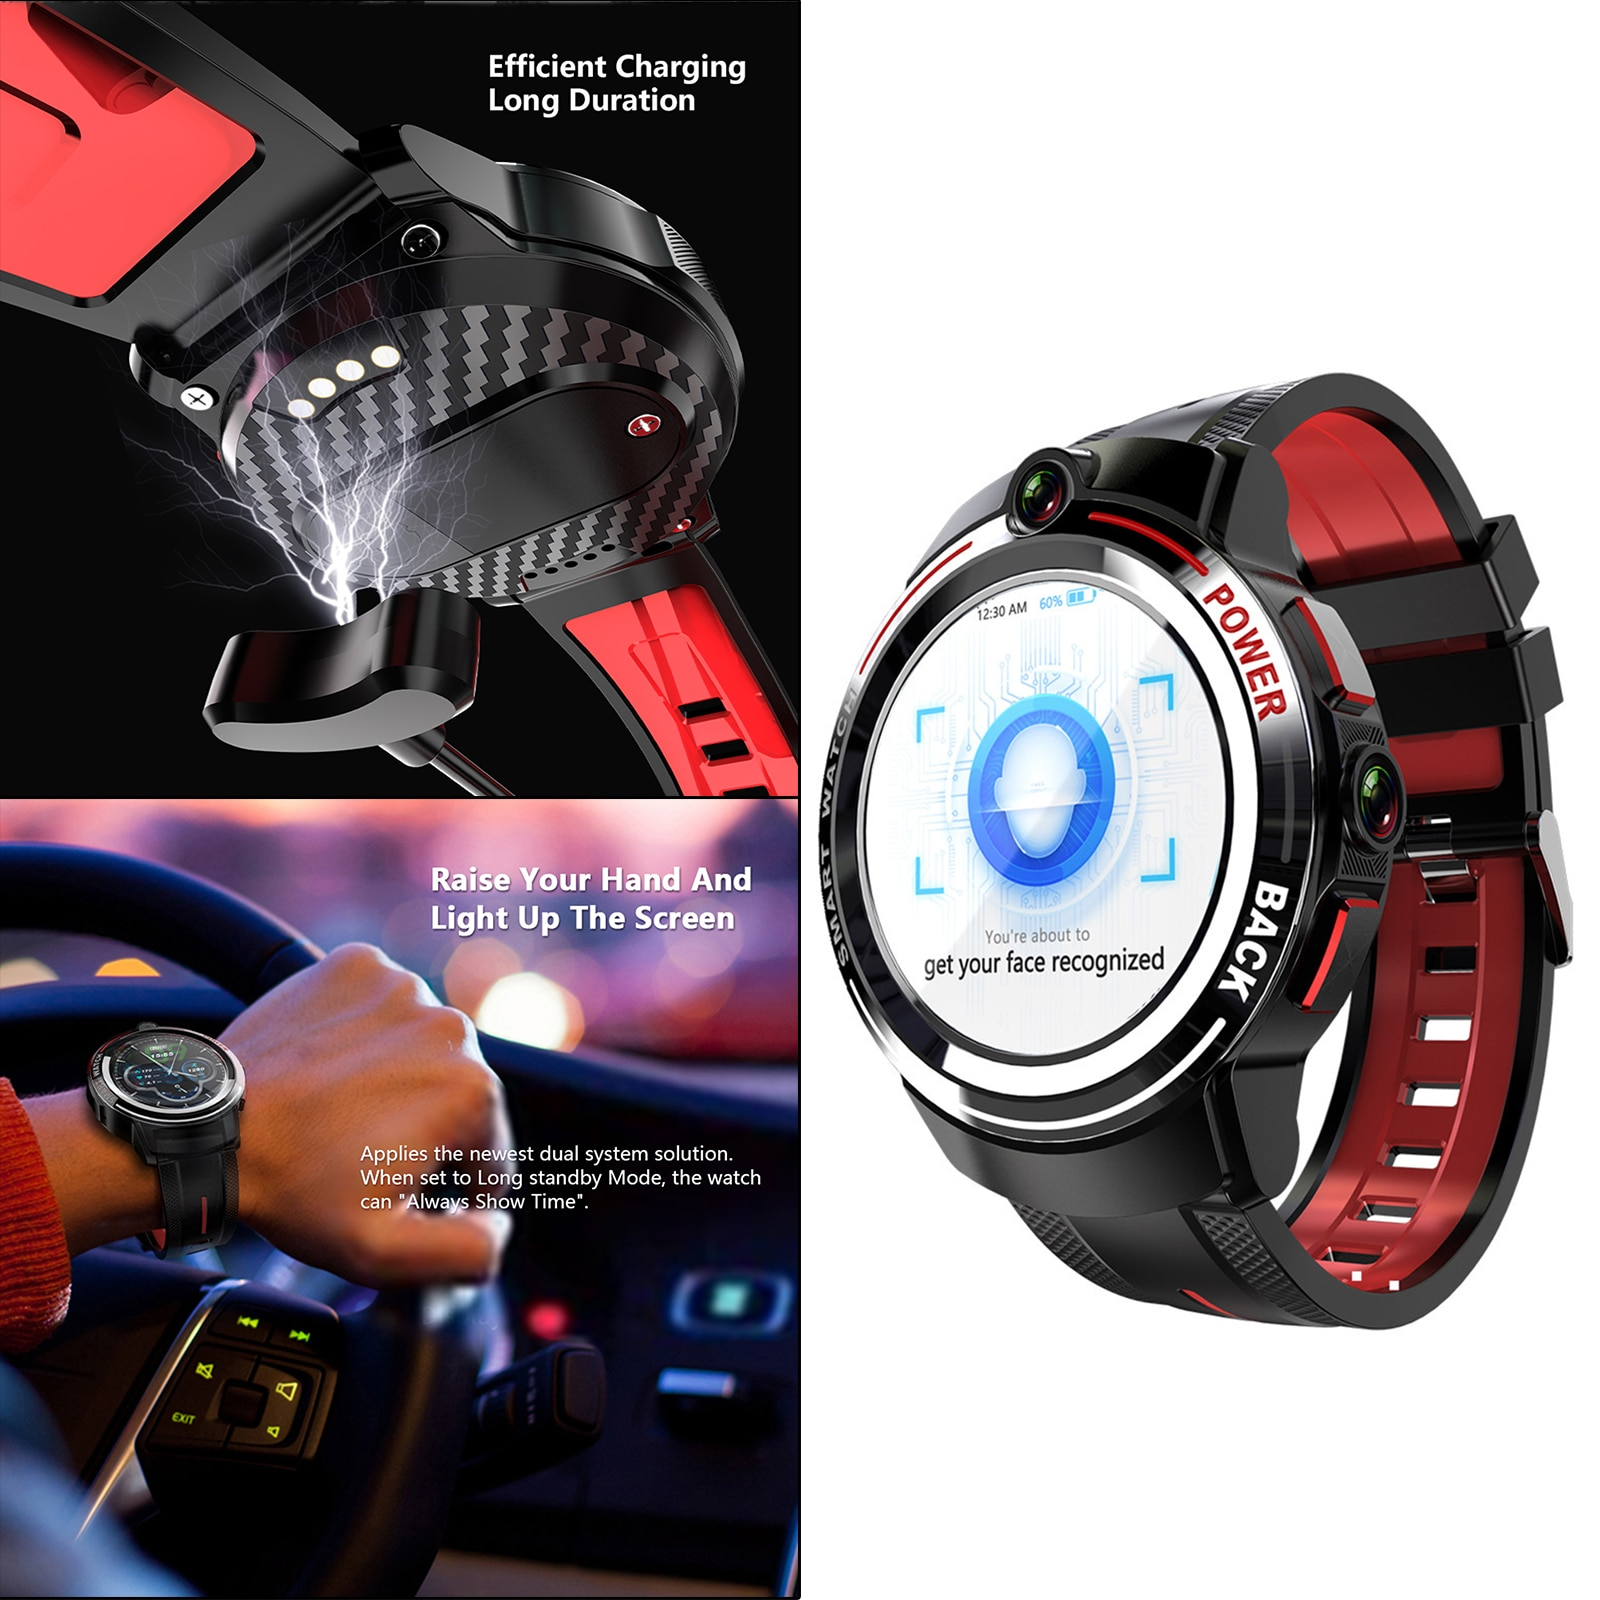 """Review 2021 New APPLLP 3 3G+32G 1.39"""" Round AMOLED Screen Smart Watch Wifi 4G Network Al Face Recognition Dual Camera Waterproof"""